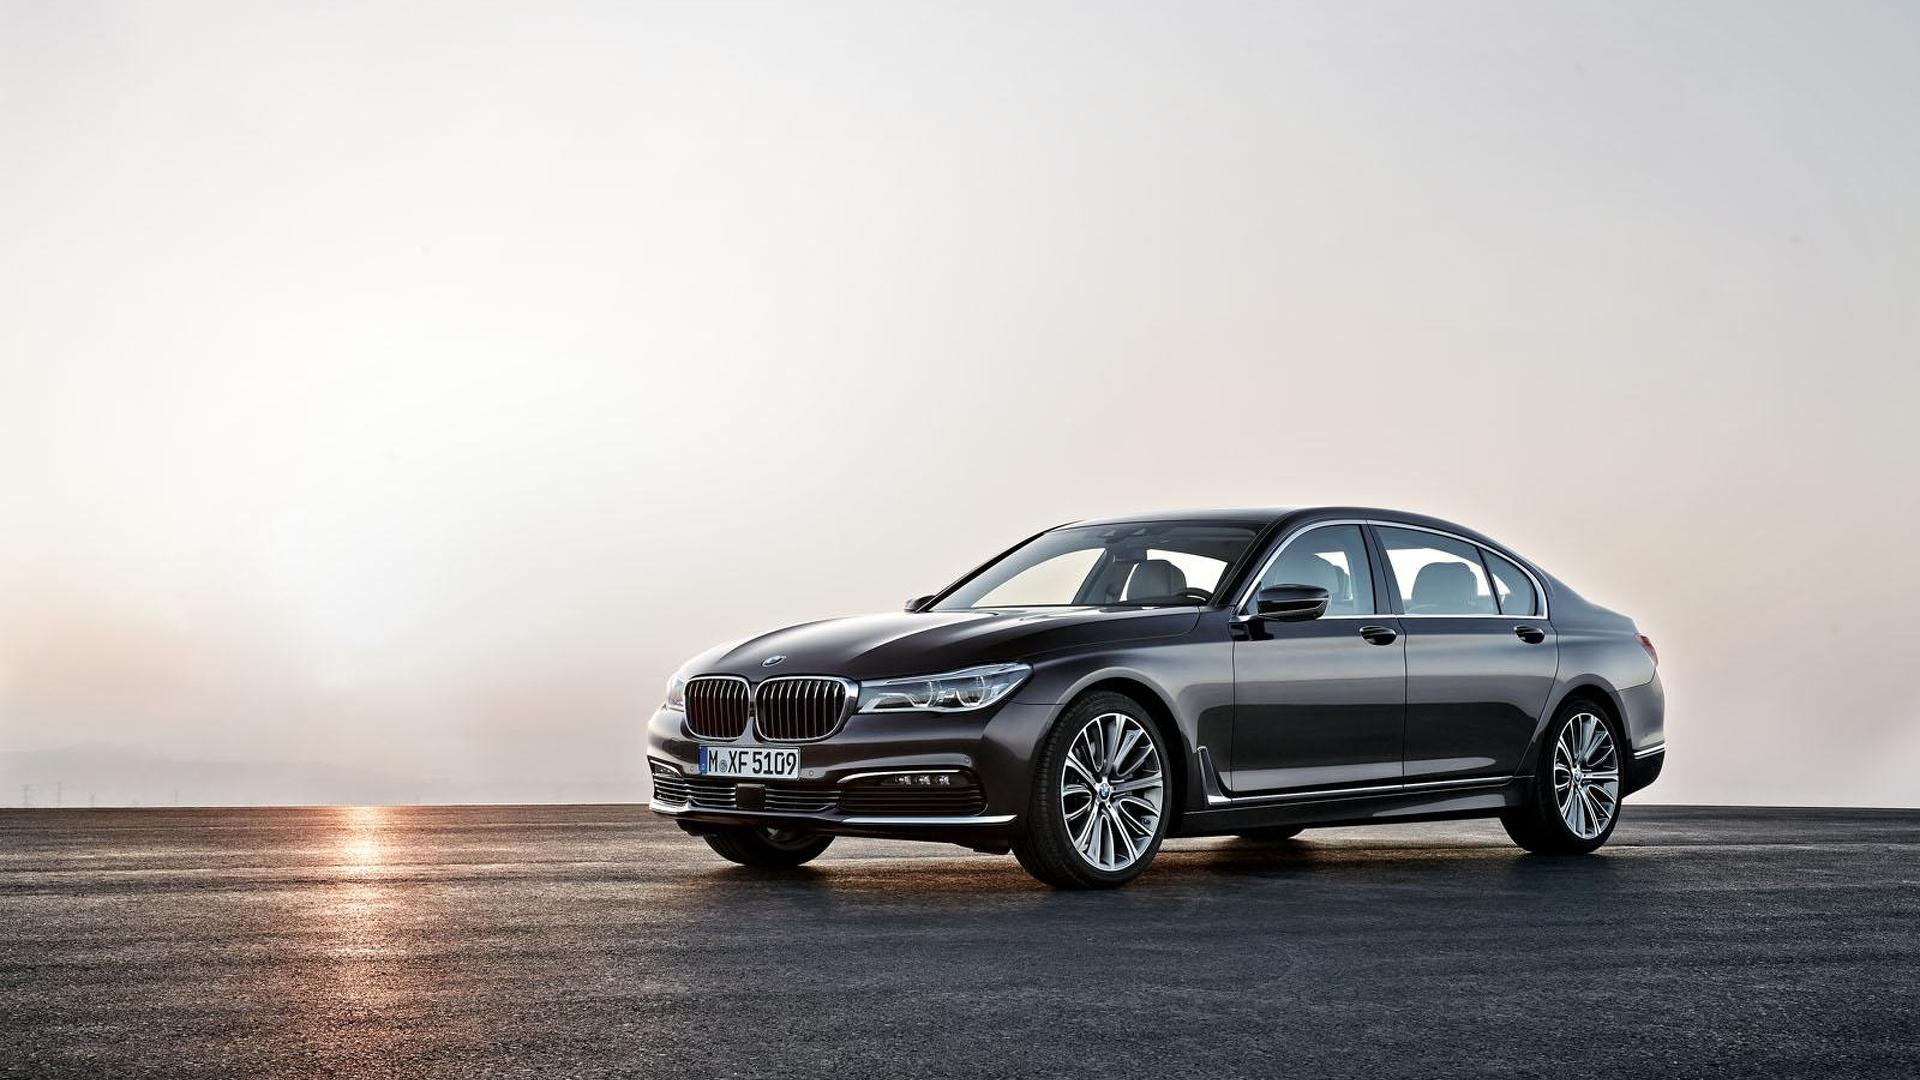 BMW 7 Series U.S. sales stopped due to airbag deployment problem